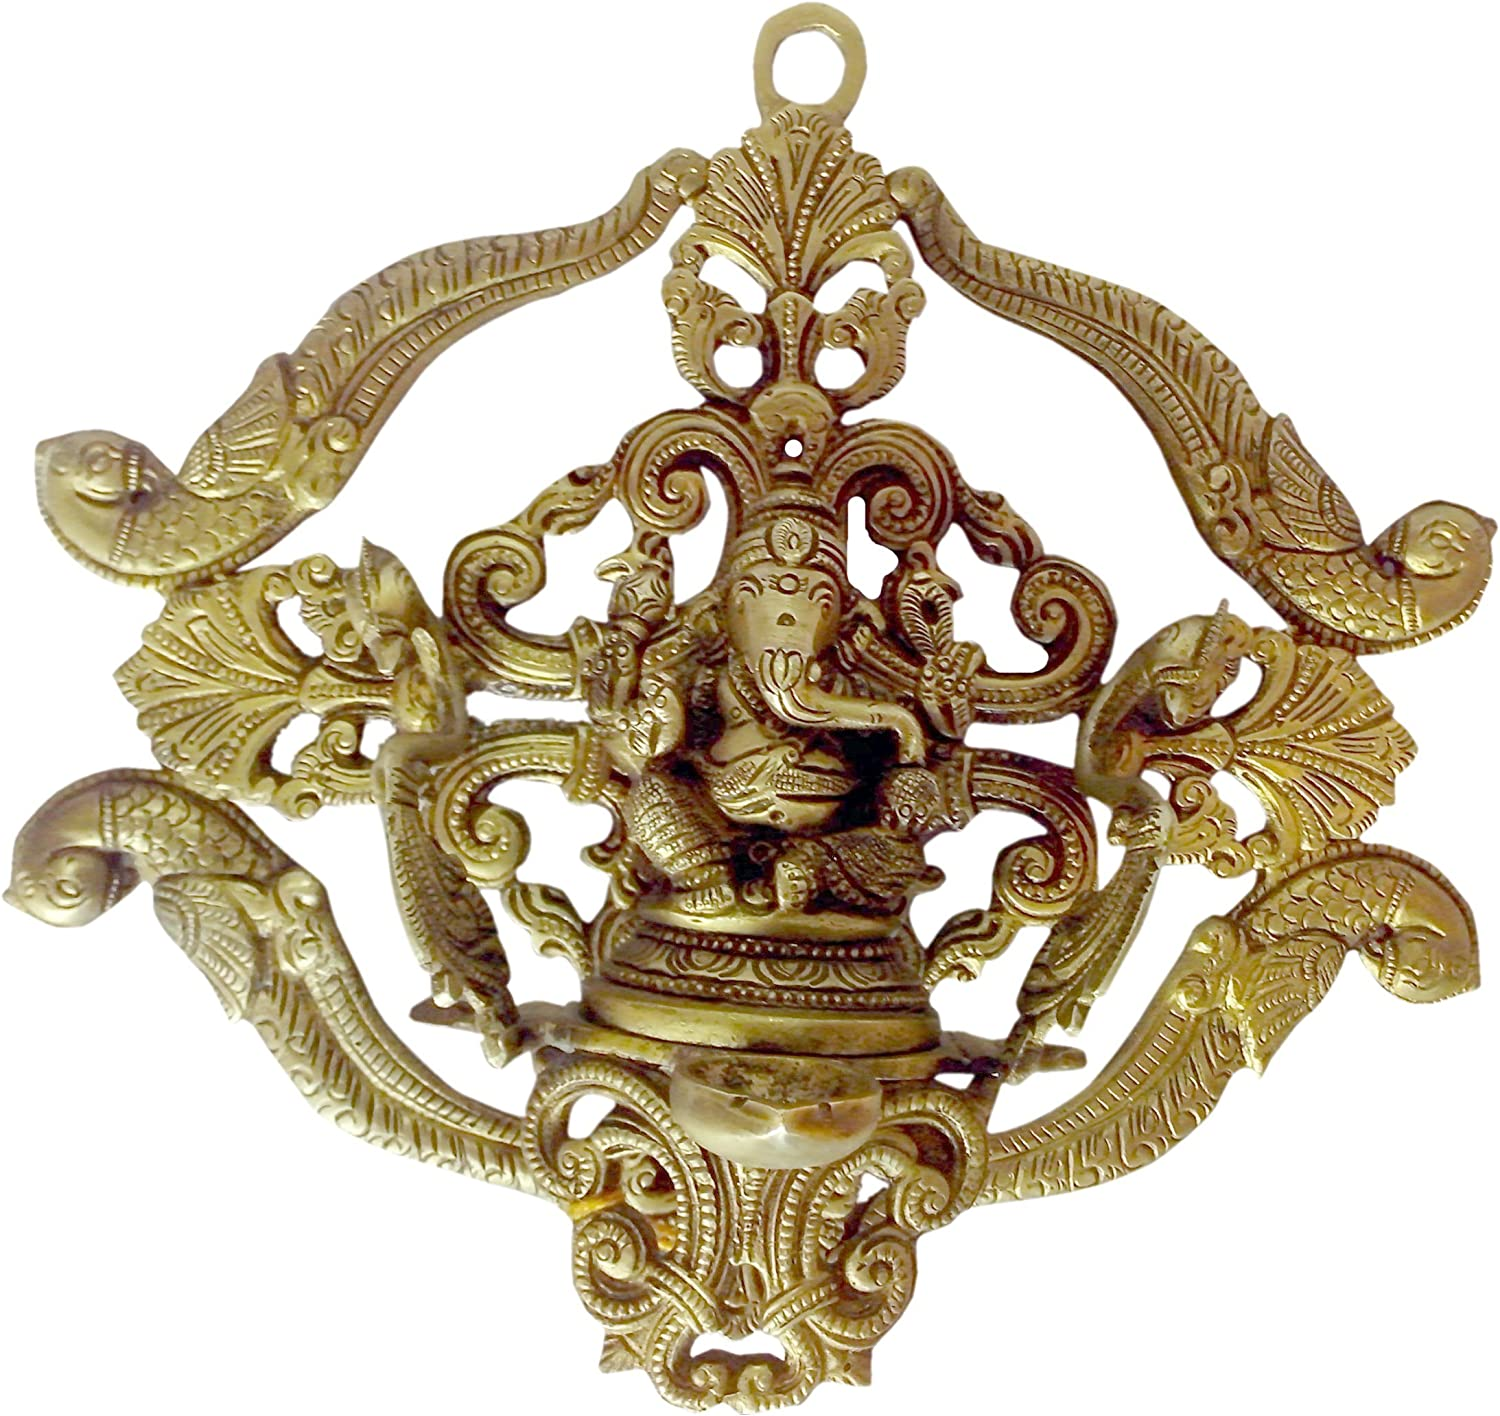 BHARAT HAAT Brass Metal Ganesh Diya with Back Jali Fine Finish Wall Hanging Work India BH00415